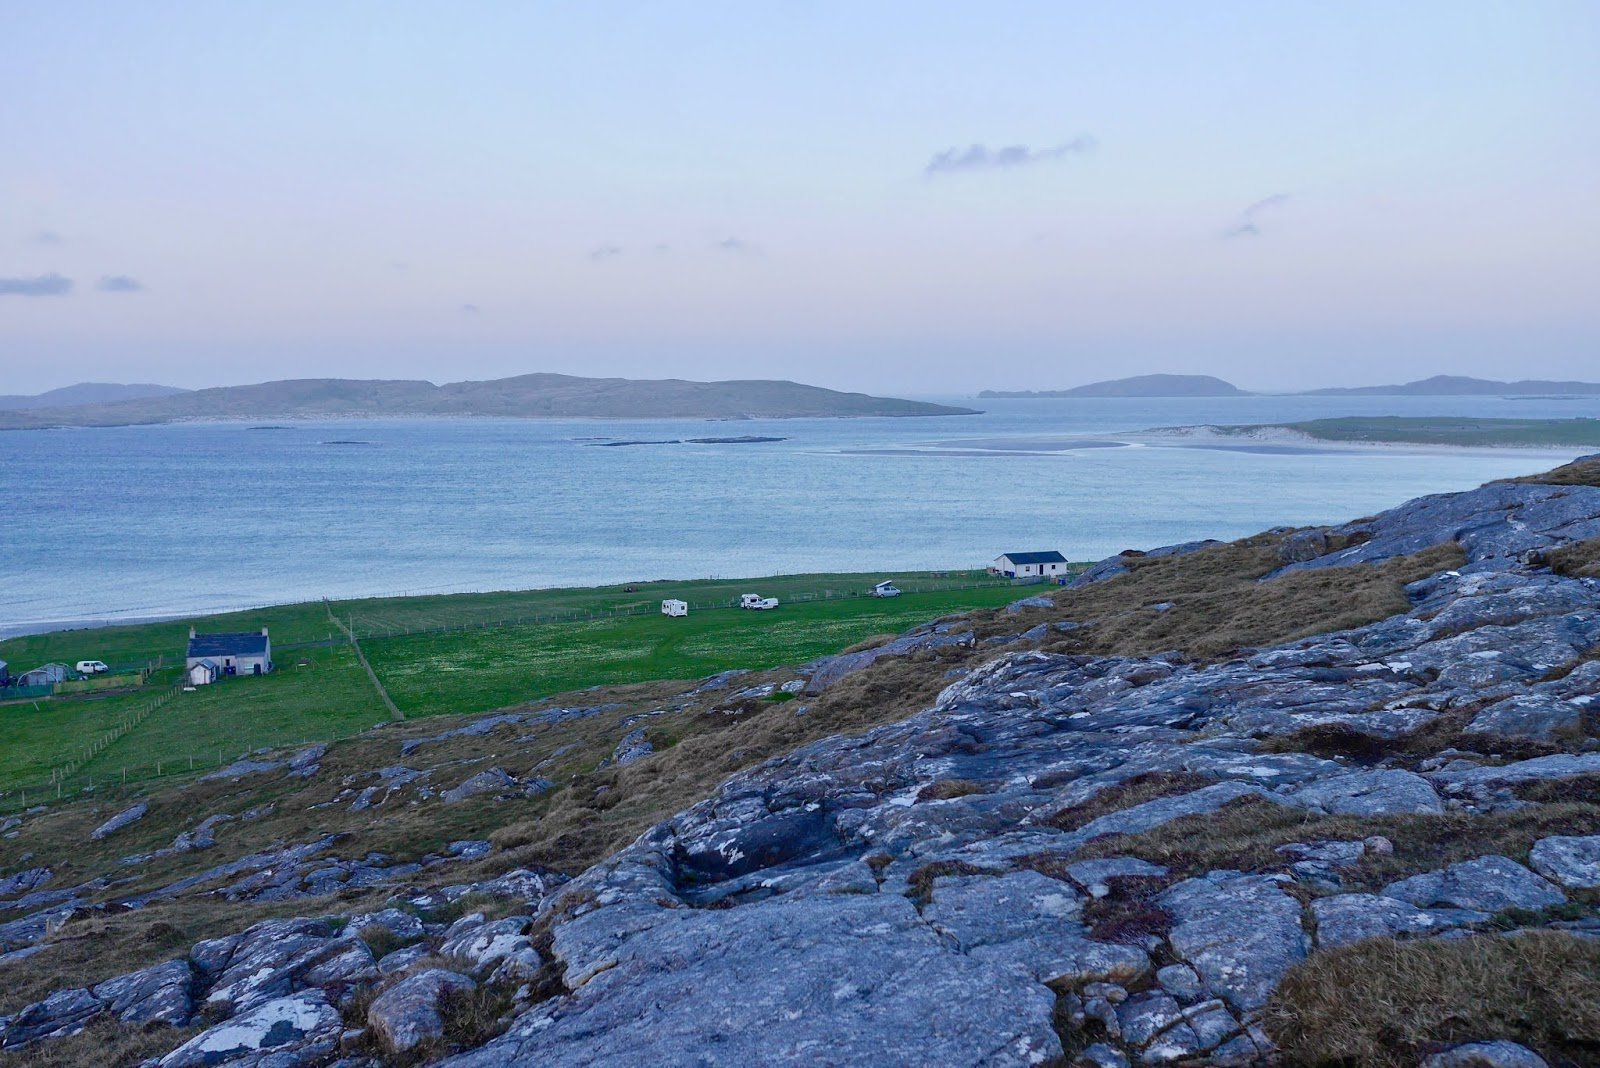 Camping in Barra, Campsites in scotland that allow fires